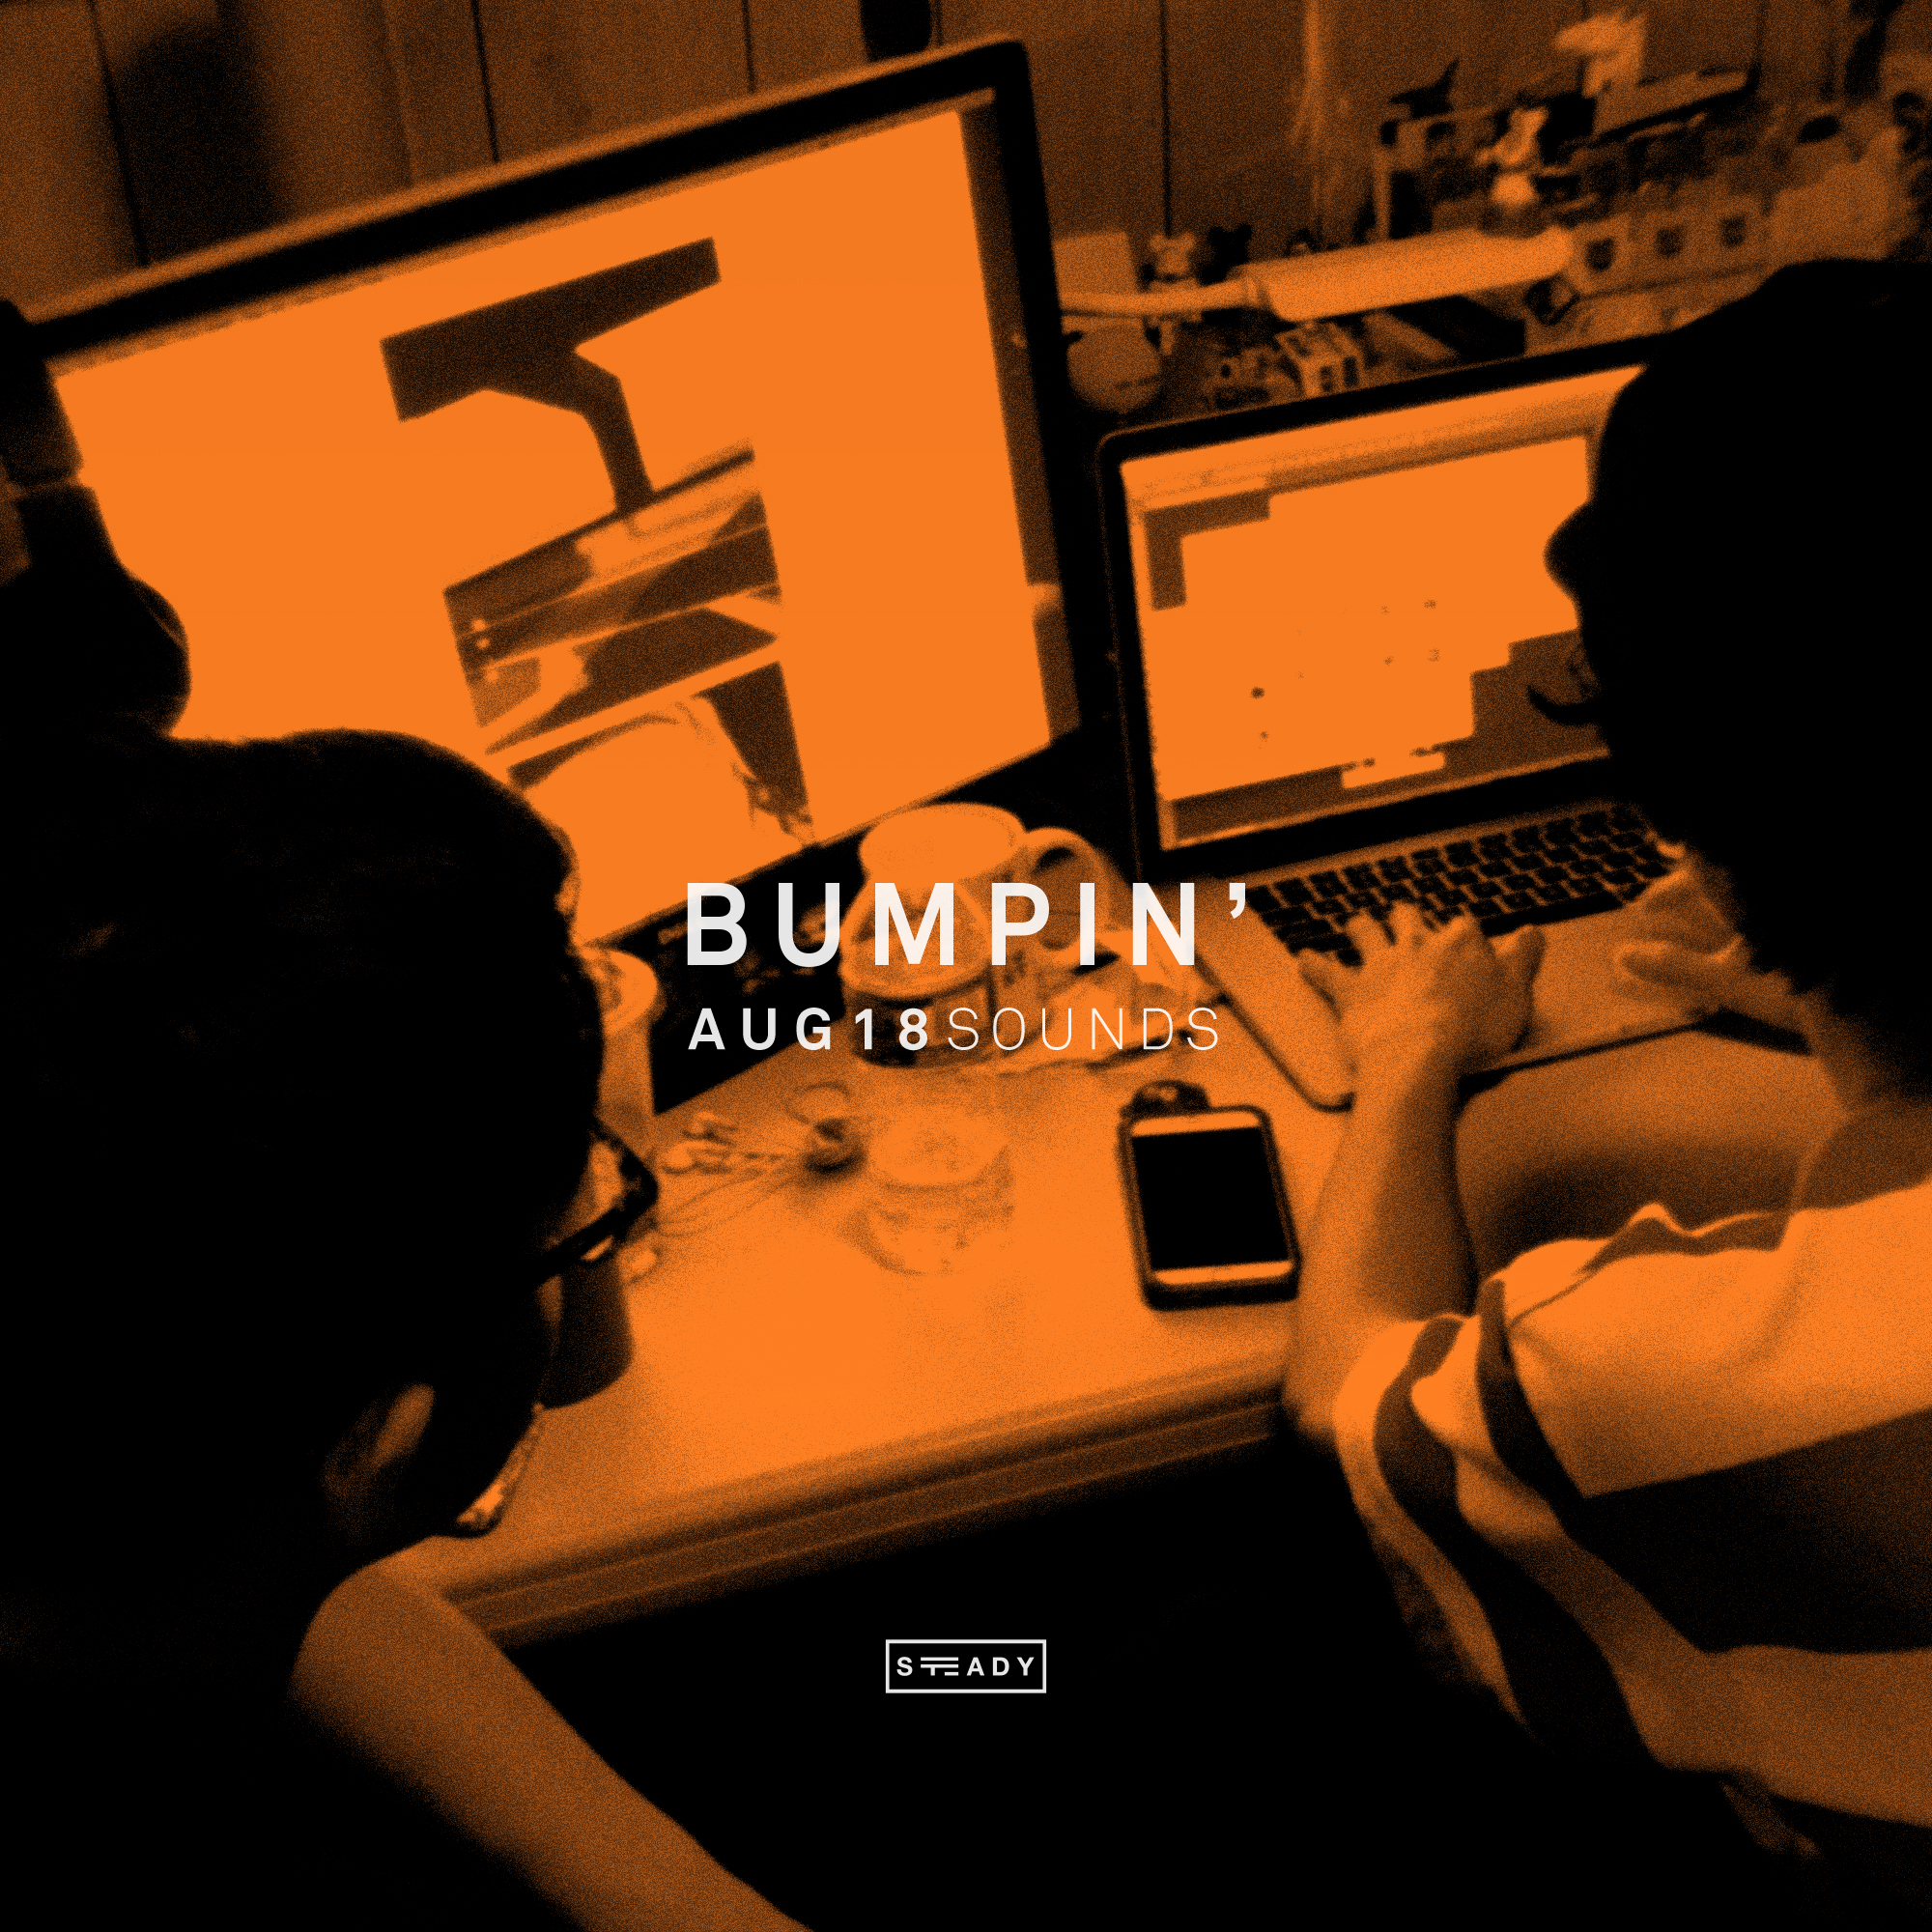 STEADY BUMPIN': AUG18 SOUNDS